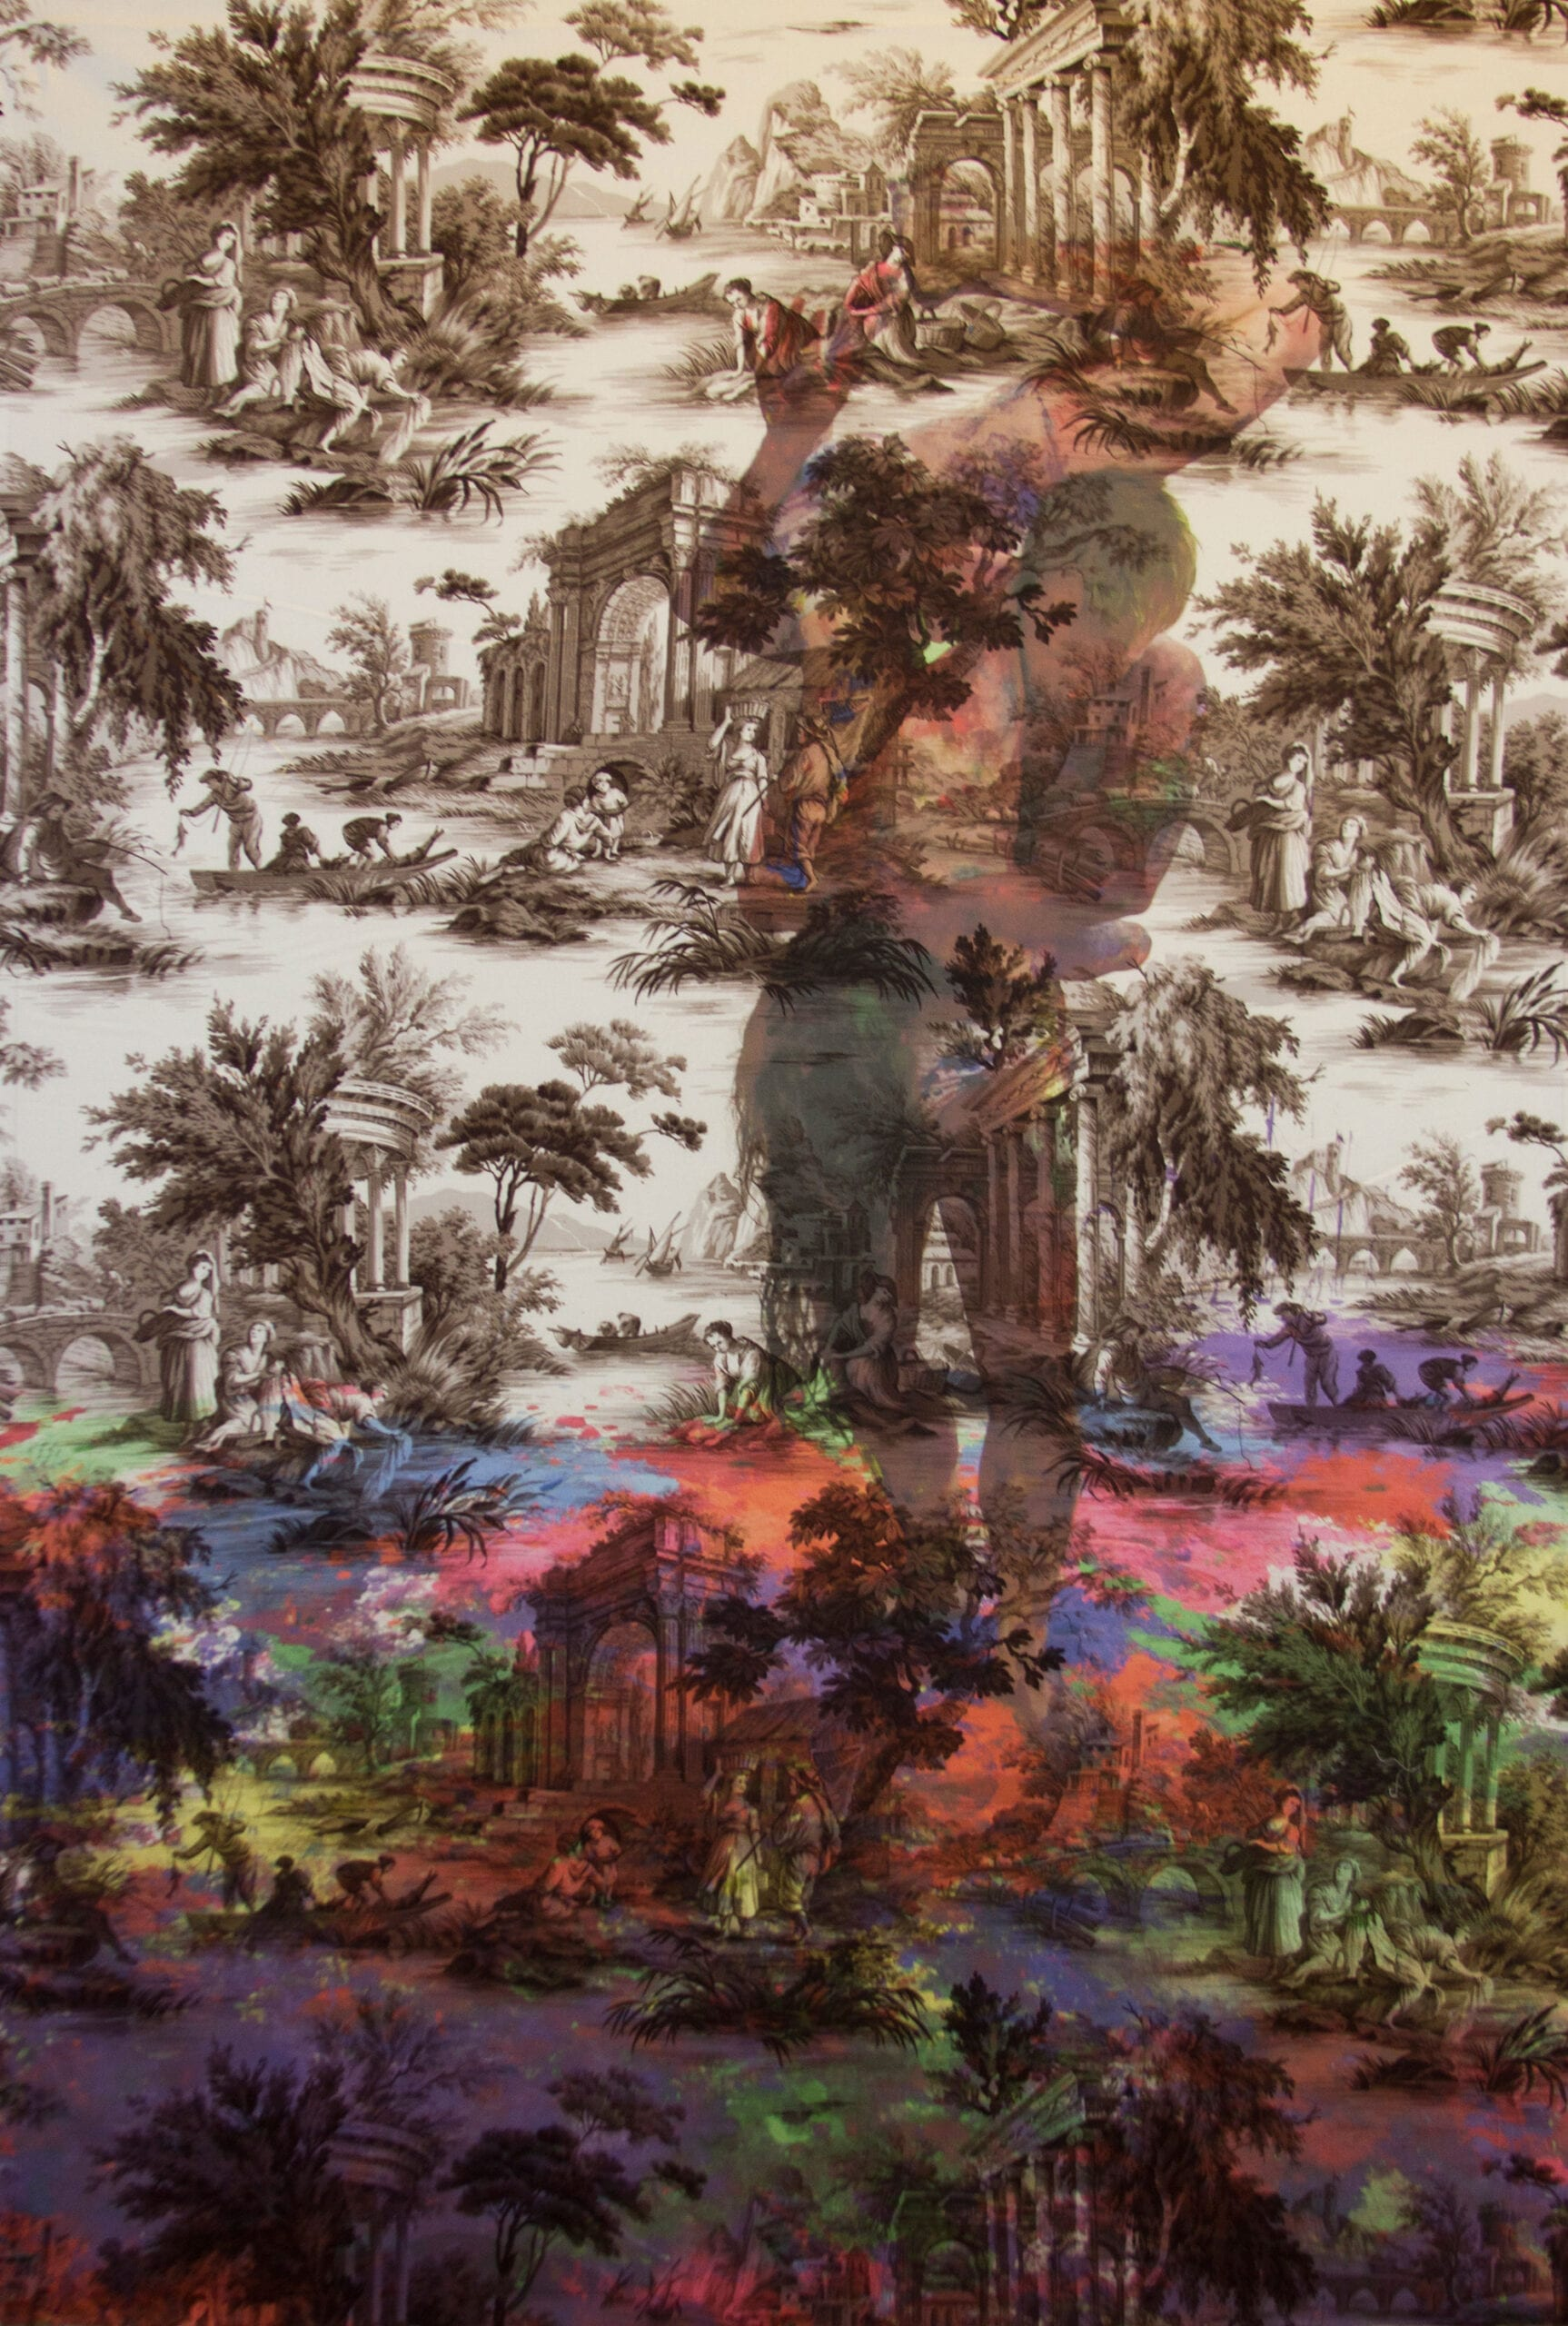 "Tim Hailand, Damien Jalet and Alexandra Gilbert in Jim Hodges paint sculpture New York (on brown pastoral toile), digital pigment print on patterned toile de Jouy fabric, 60"" x 40"", unique print, 2013"